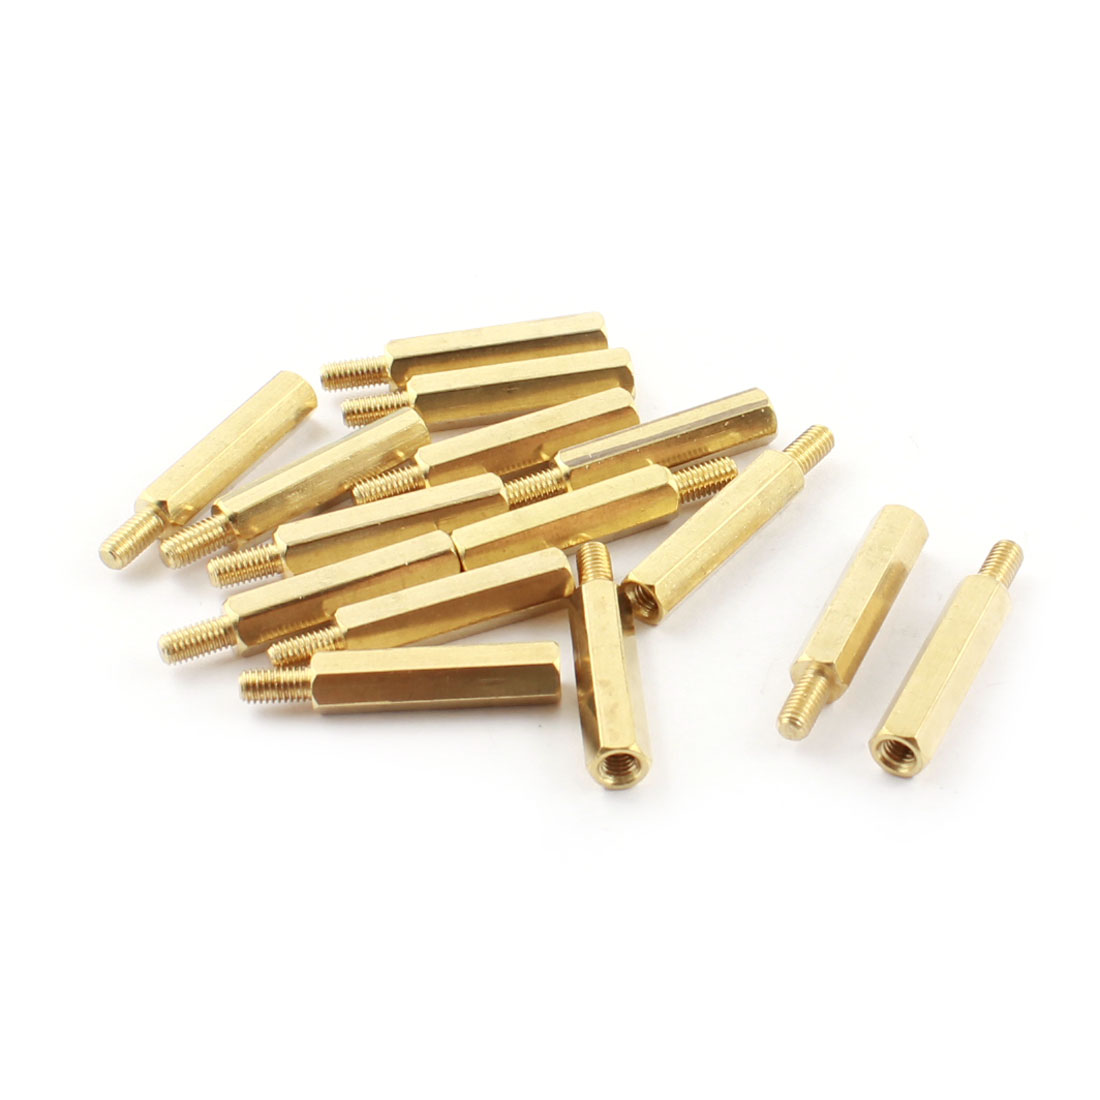 M3x6mm Male to Female Thread Brass Pillar Standoff Spacer 15Pcs